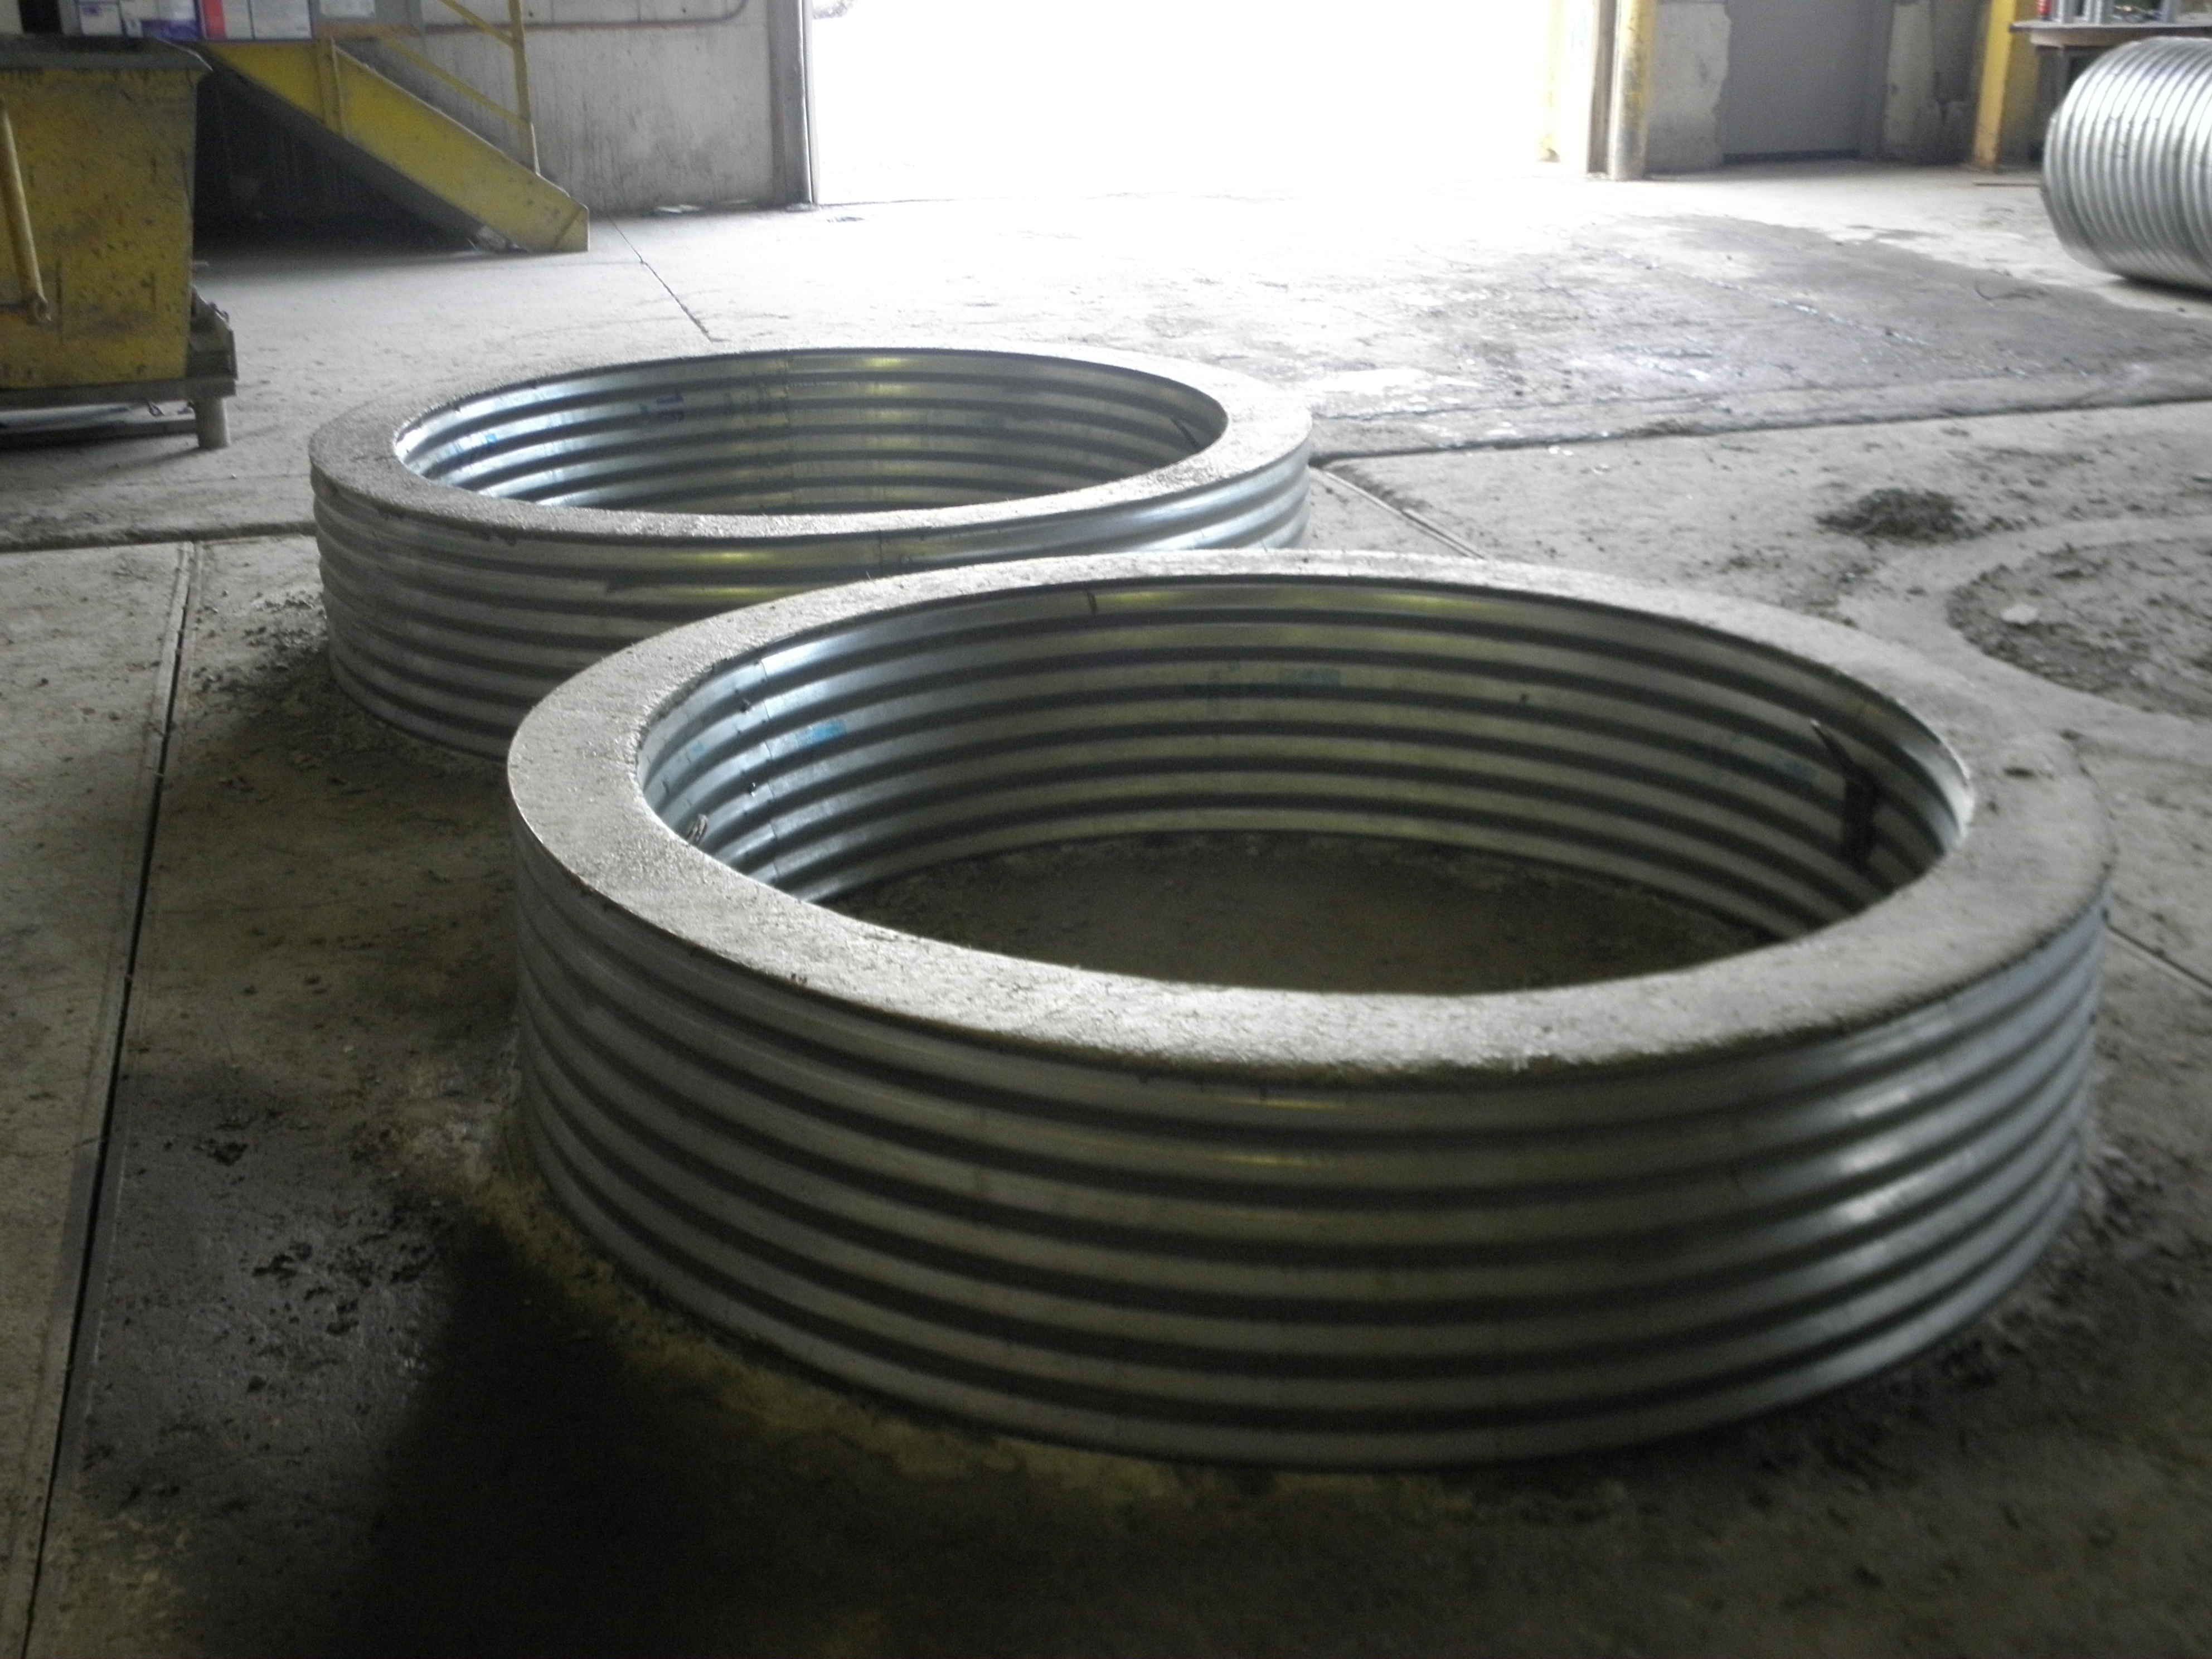 Fire Pit Rings Cadillac Culvert Inc pertaining to size 3968 X 2976